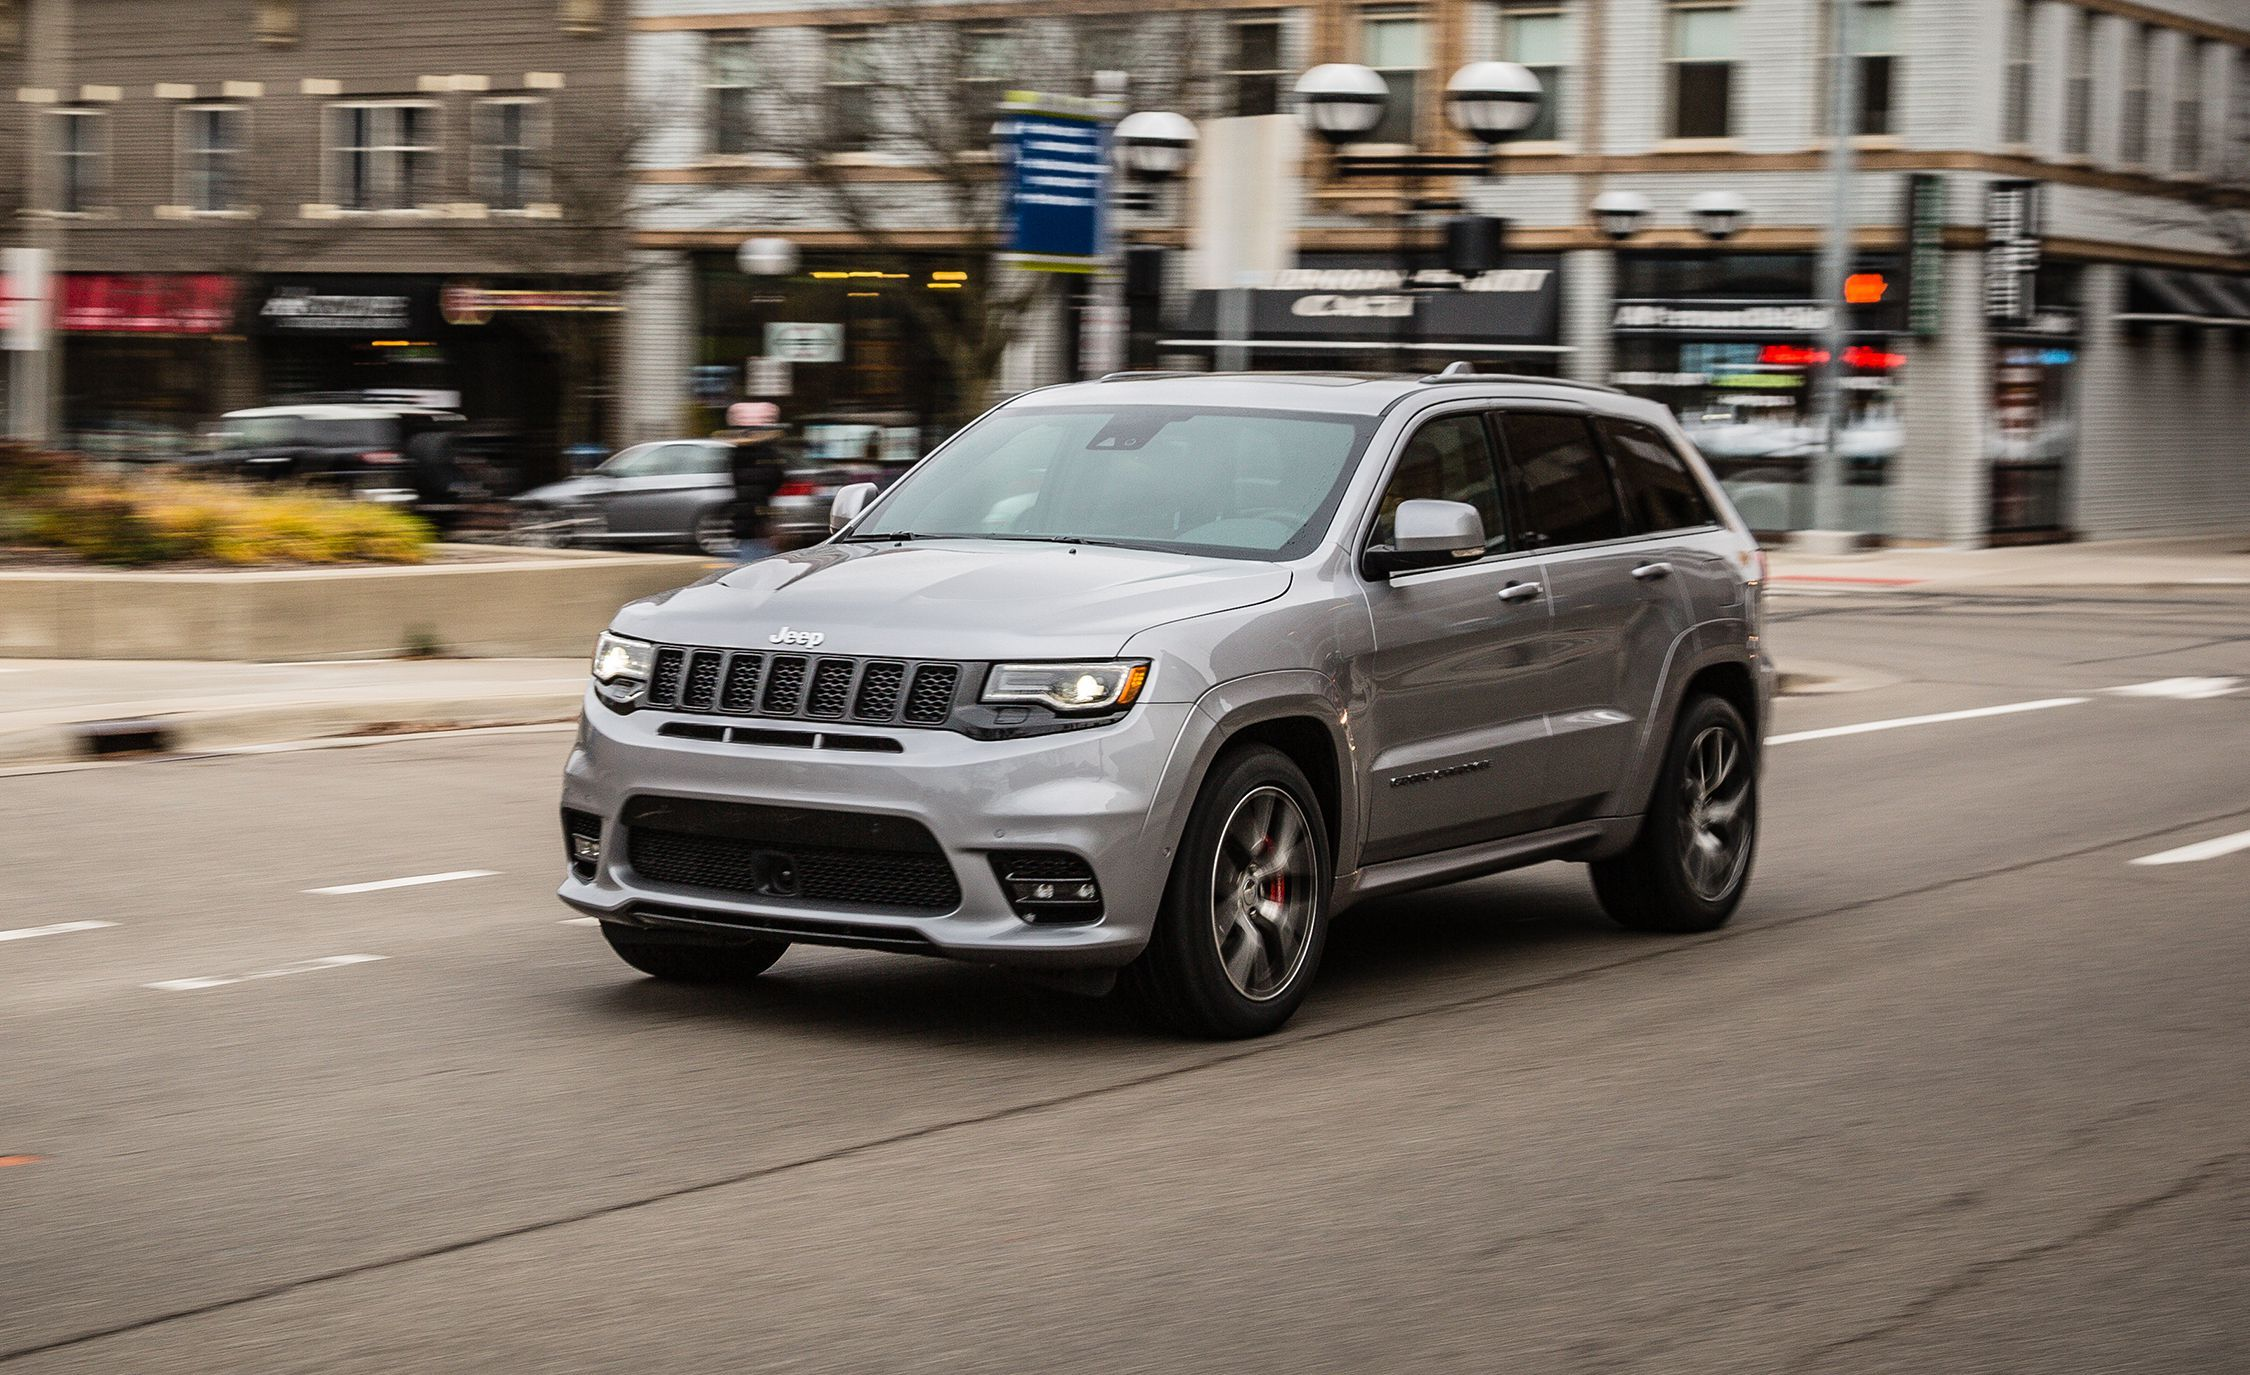 Jeep Grand Cherokee SRT Reviews | Jeep Grand Cherokee SRT Price, Photos,  and Specs | Car and Driver